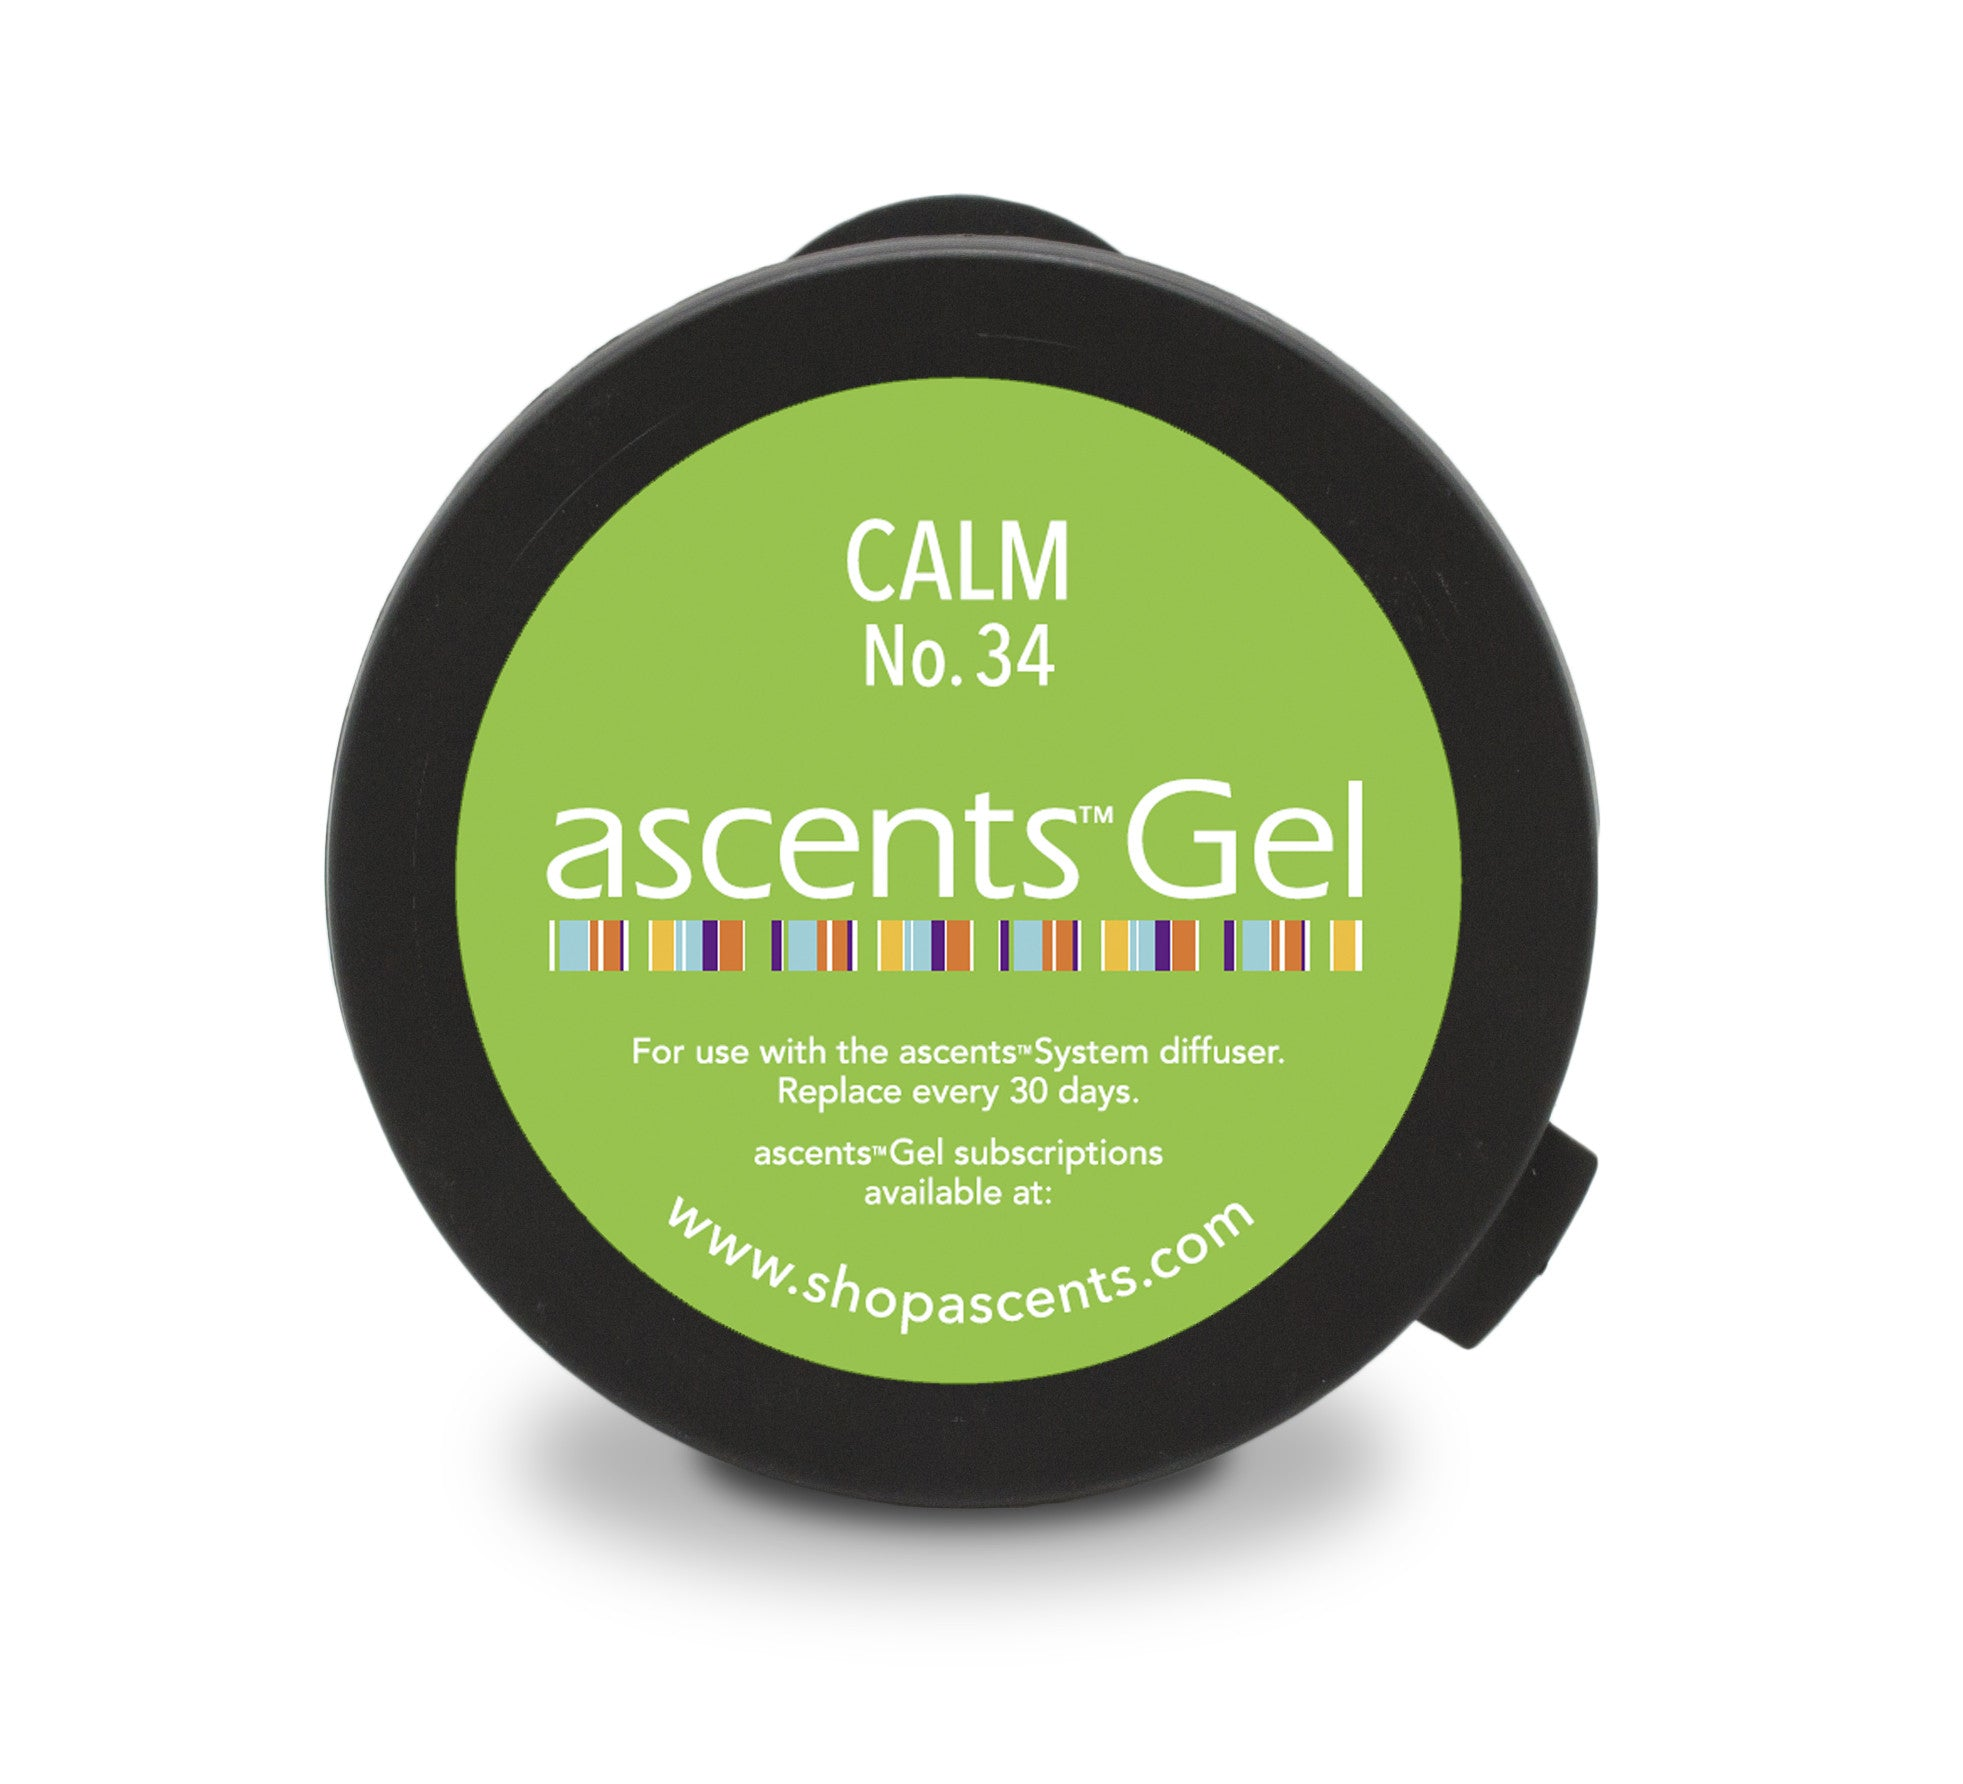 Calm No. 34 Ascents® Solid Essential Oil Gel